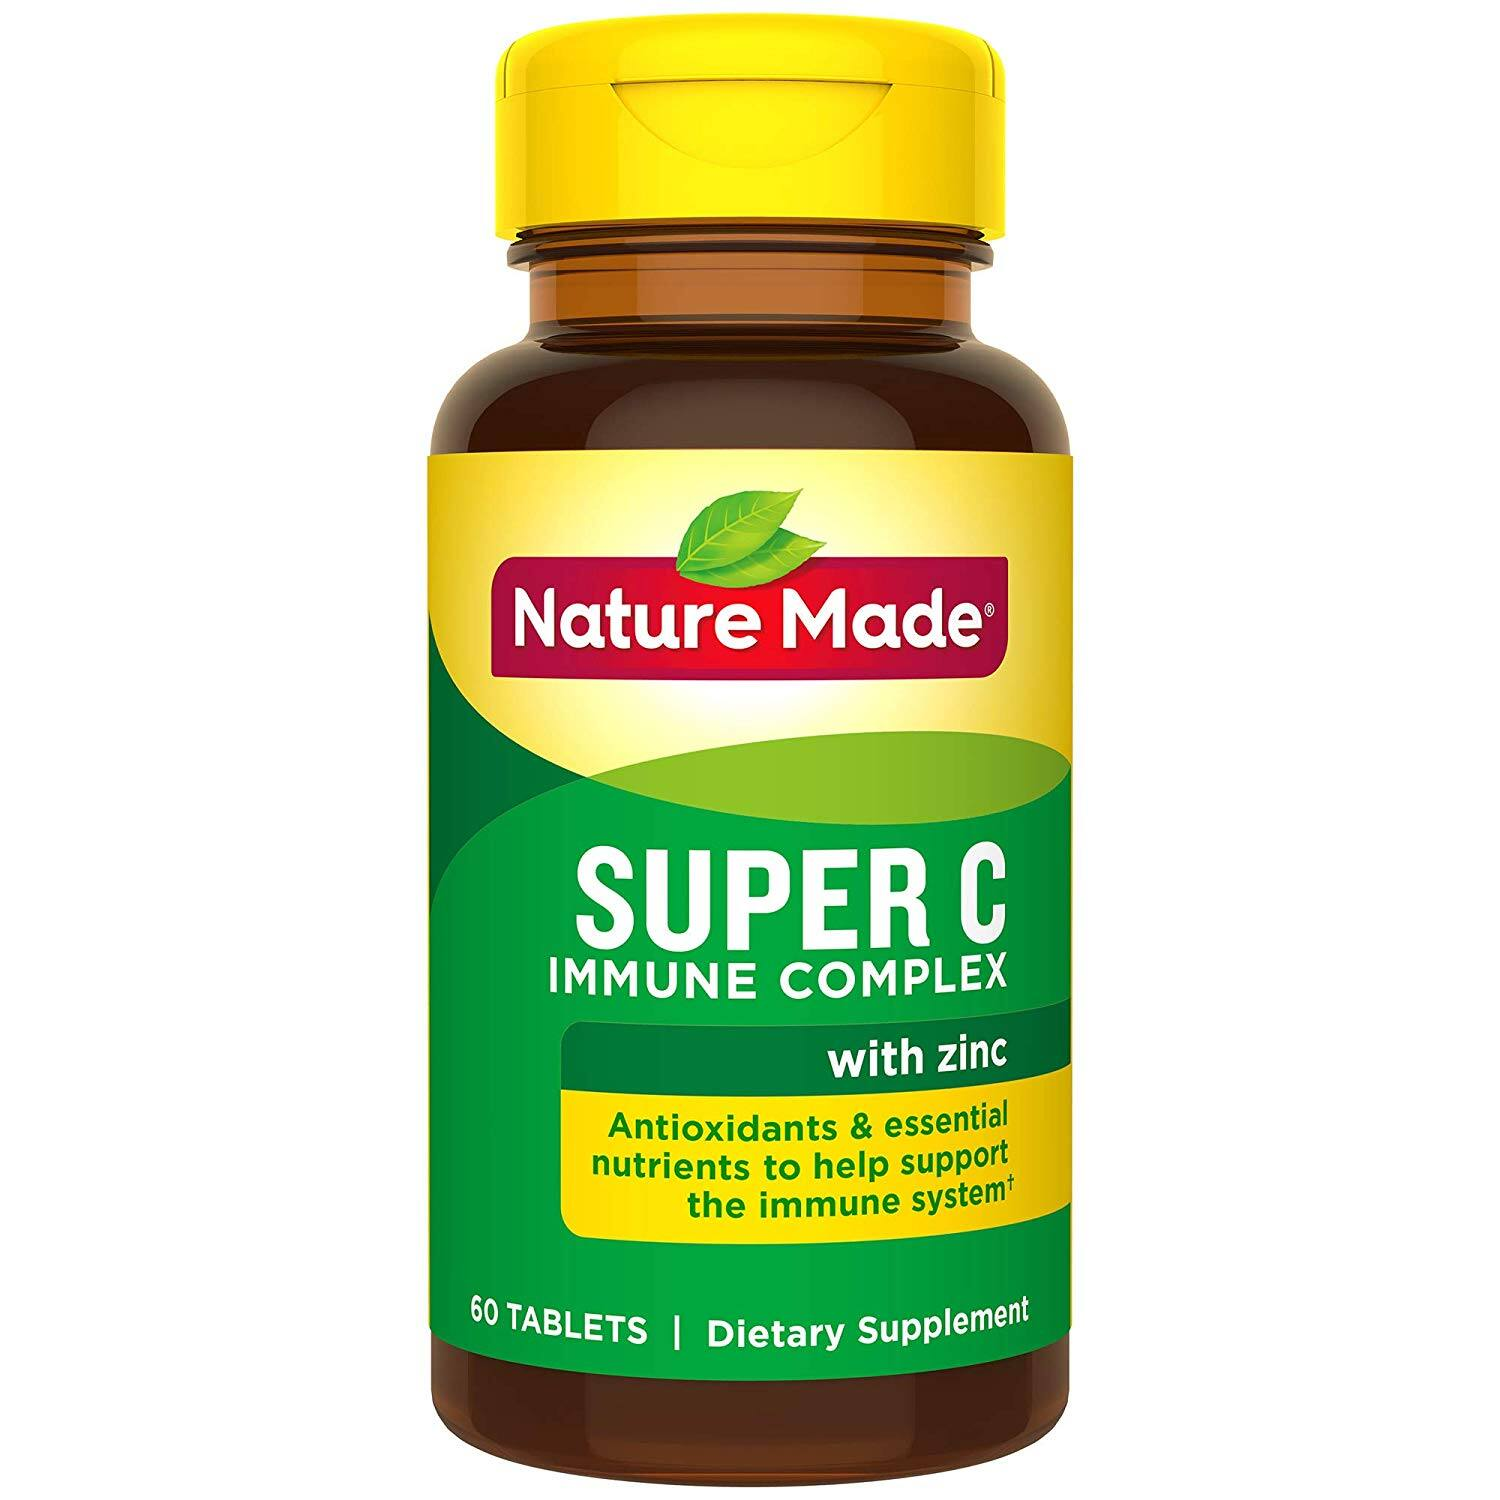 120-Count Nature Made Super C Immune Complex Tablets w/ Vitamin C, D & Zinc for FREE w/ S&S + free s/h